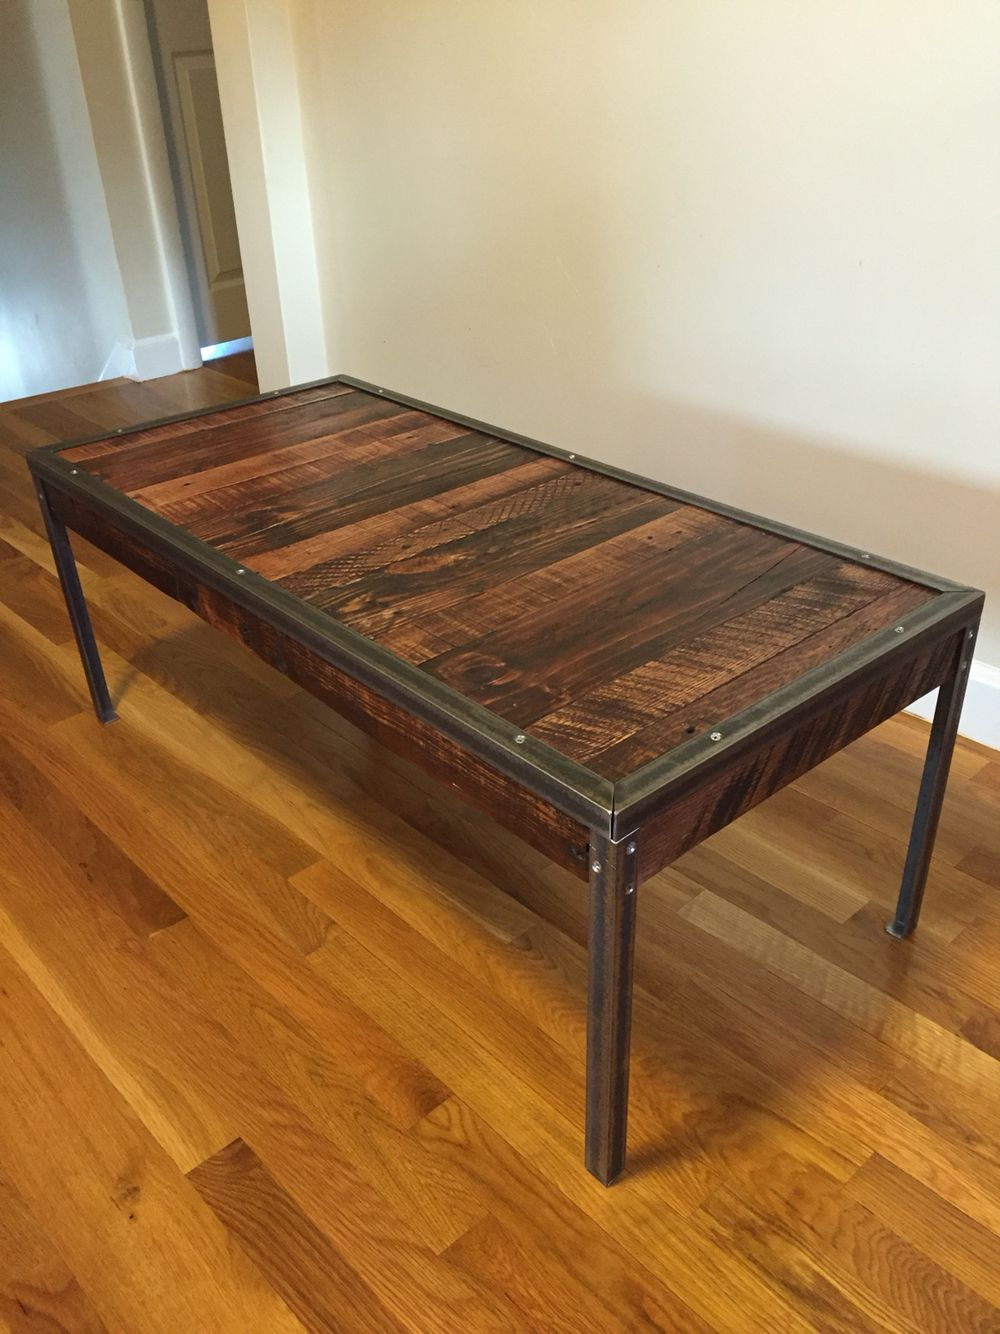 Mixed Pallet Wood With Angle Iron Coffee Table Total Cost 1500 For The